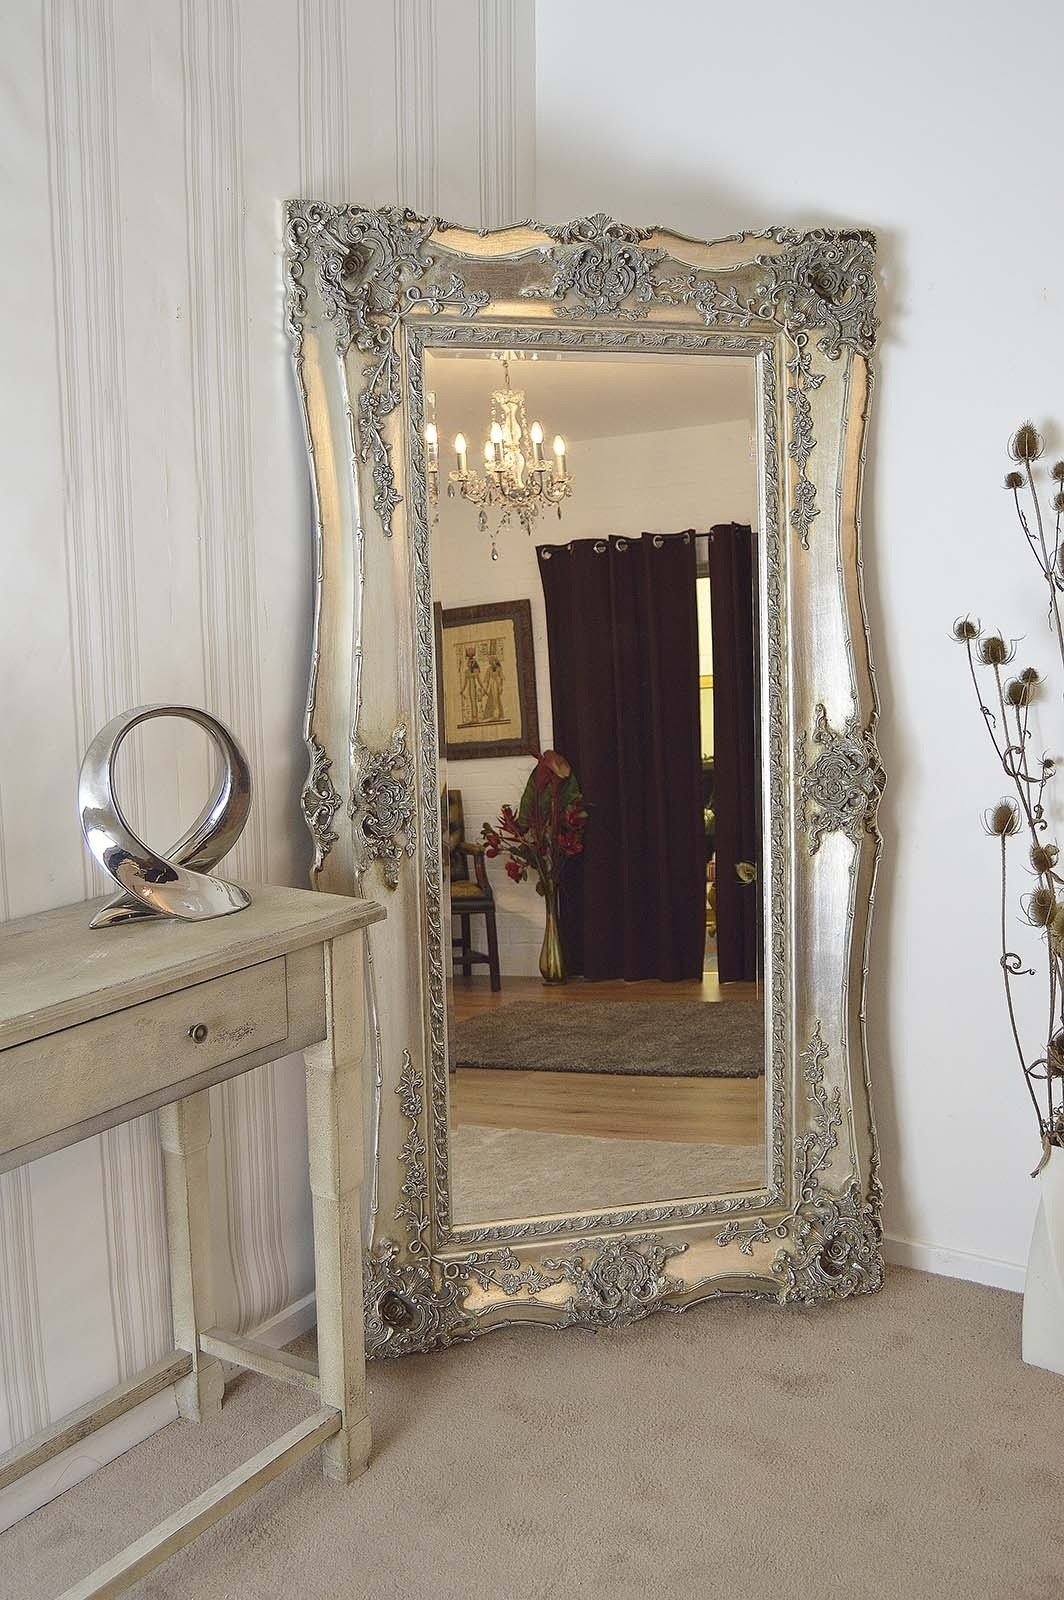 Extra Large Mirrors 10 Tips For Choosing Inovodecor Regarding Ornate Mirrors Cheap (Image 8 of 15)